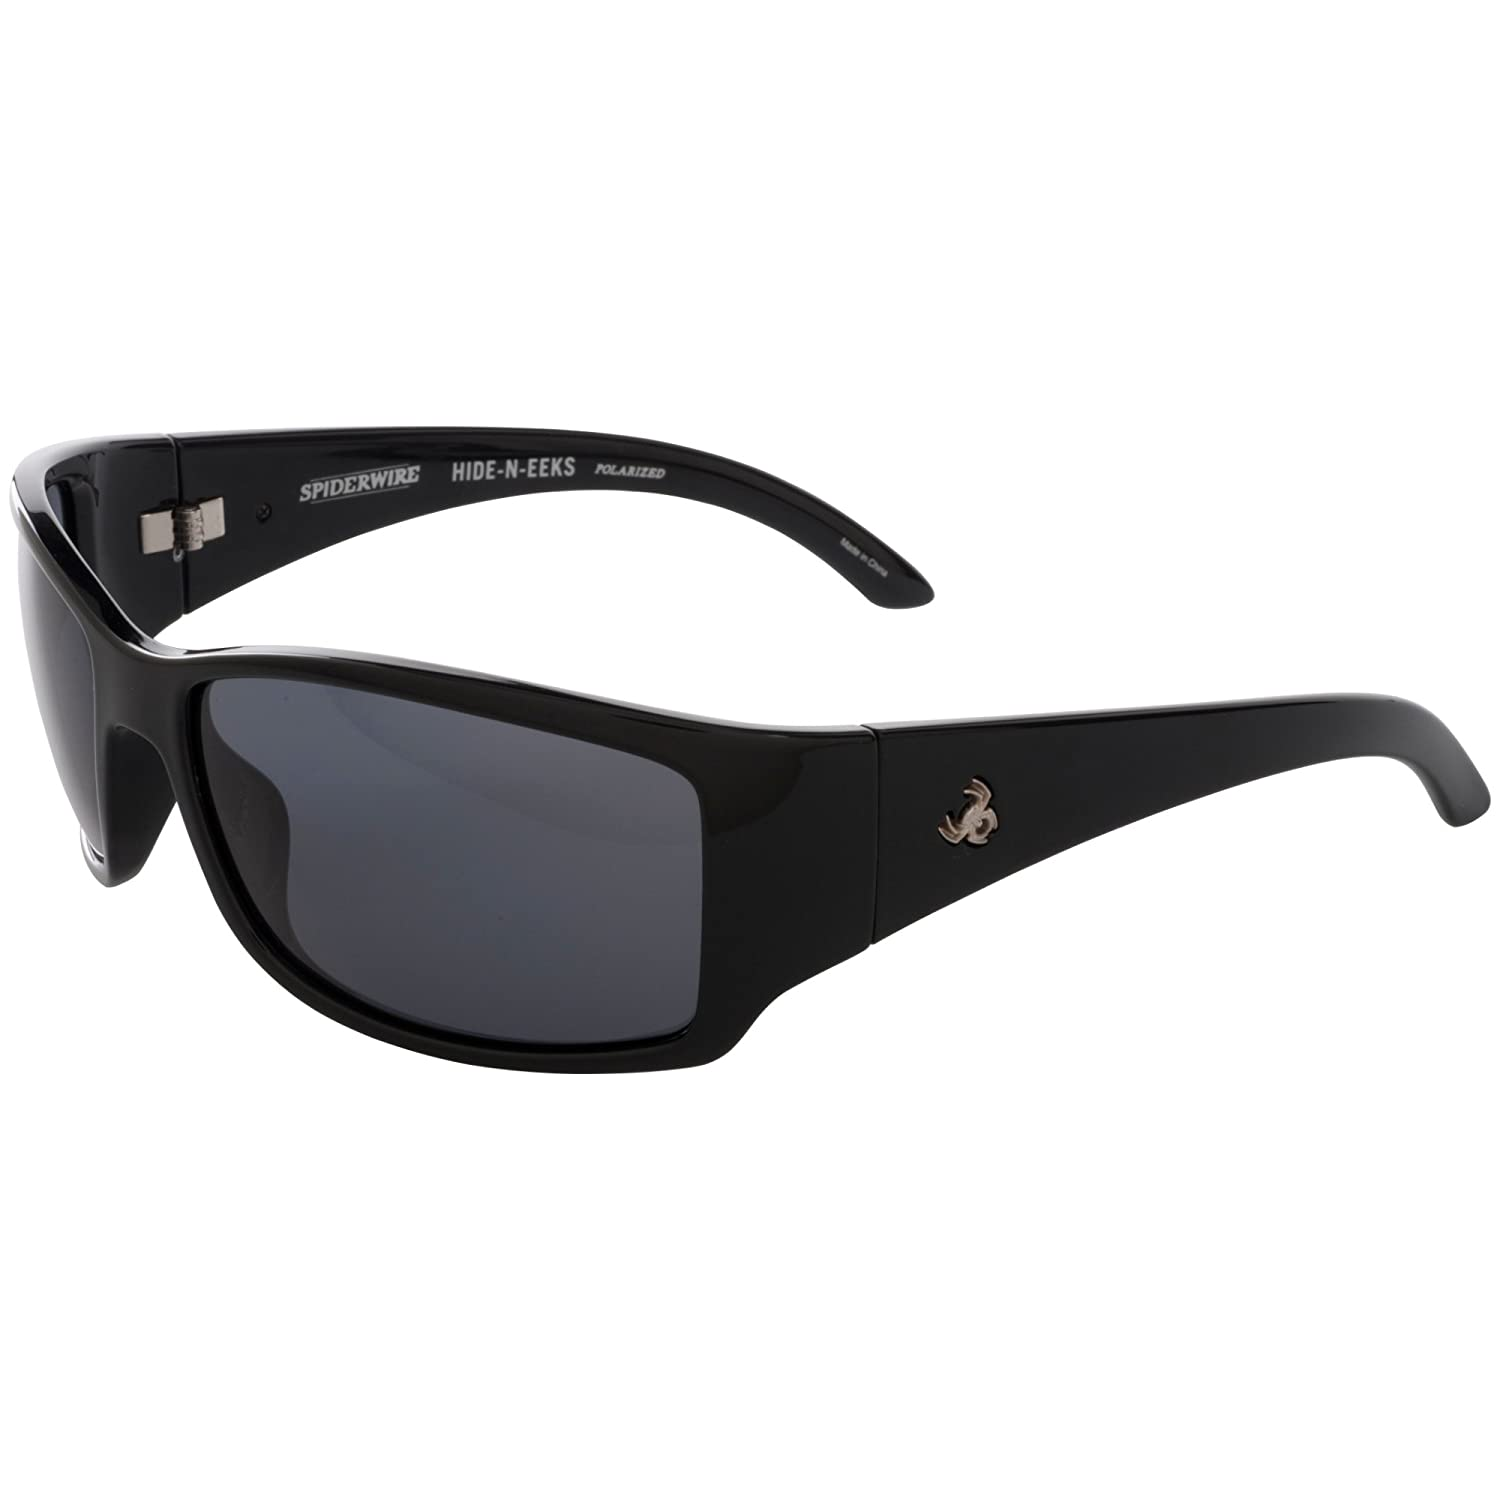 9720d7e2d1 Amazon.com   SpiderWire Hide N Eek Sunglasses   Sports   Outdoors